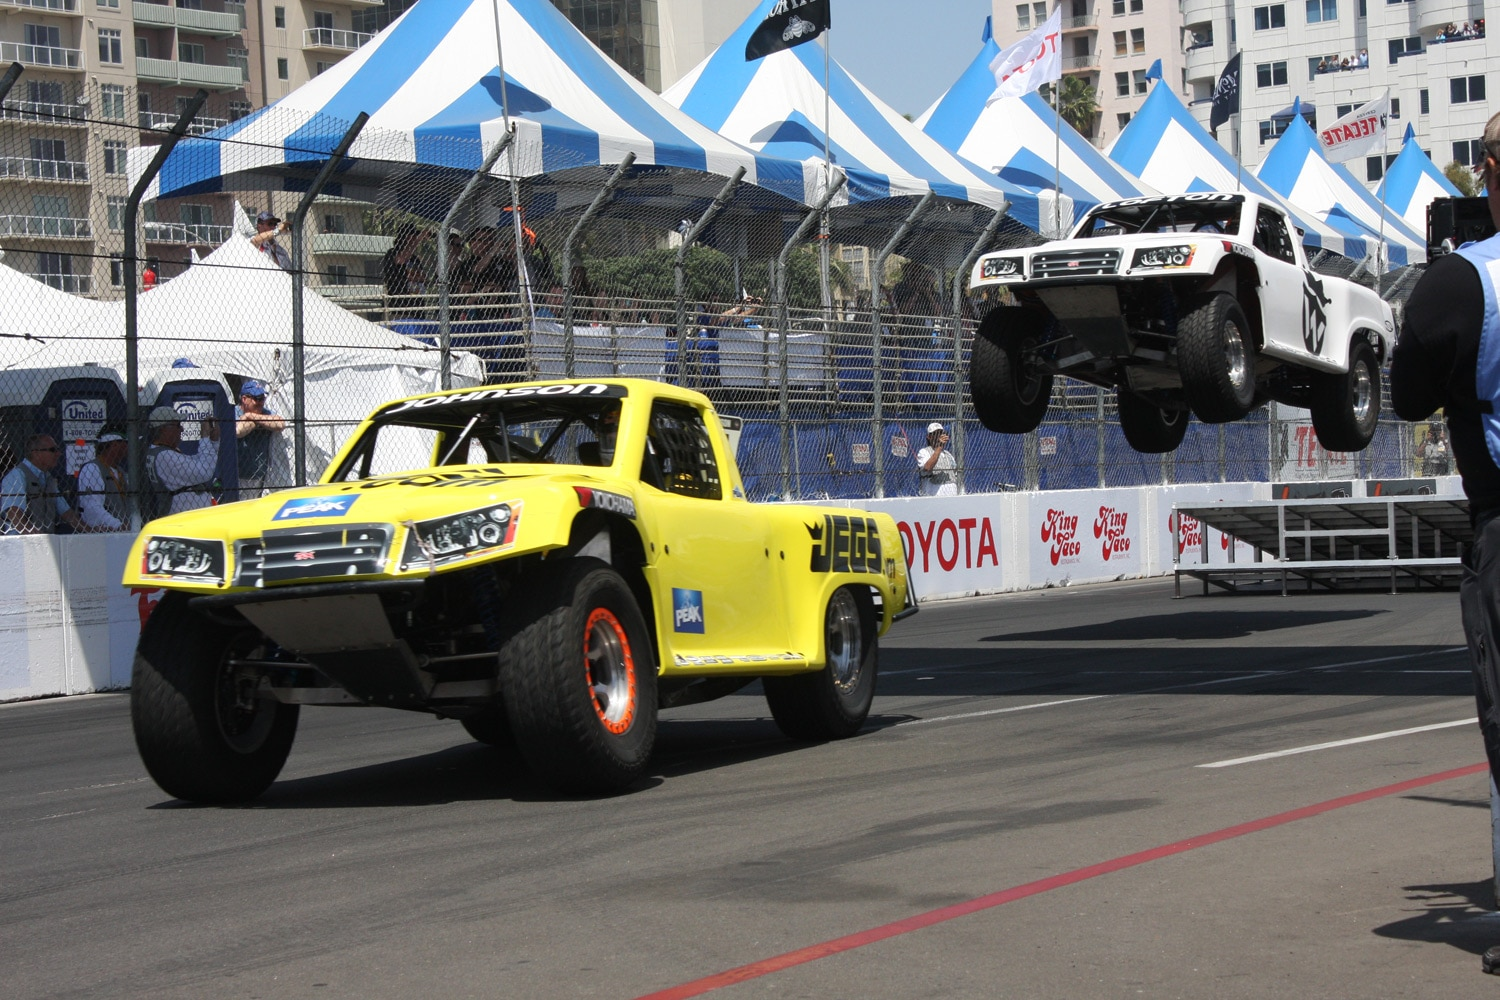 1304OR 26+Robby Gordon SST Stadium Super Trucks 2013 Long Beach Grand Prix